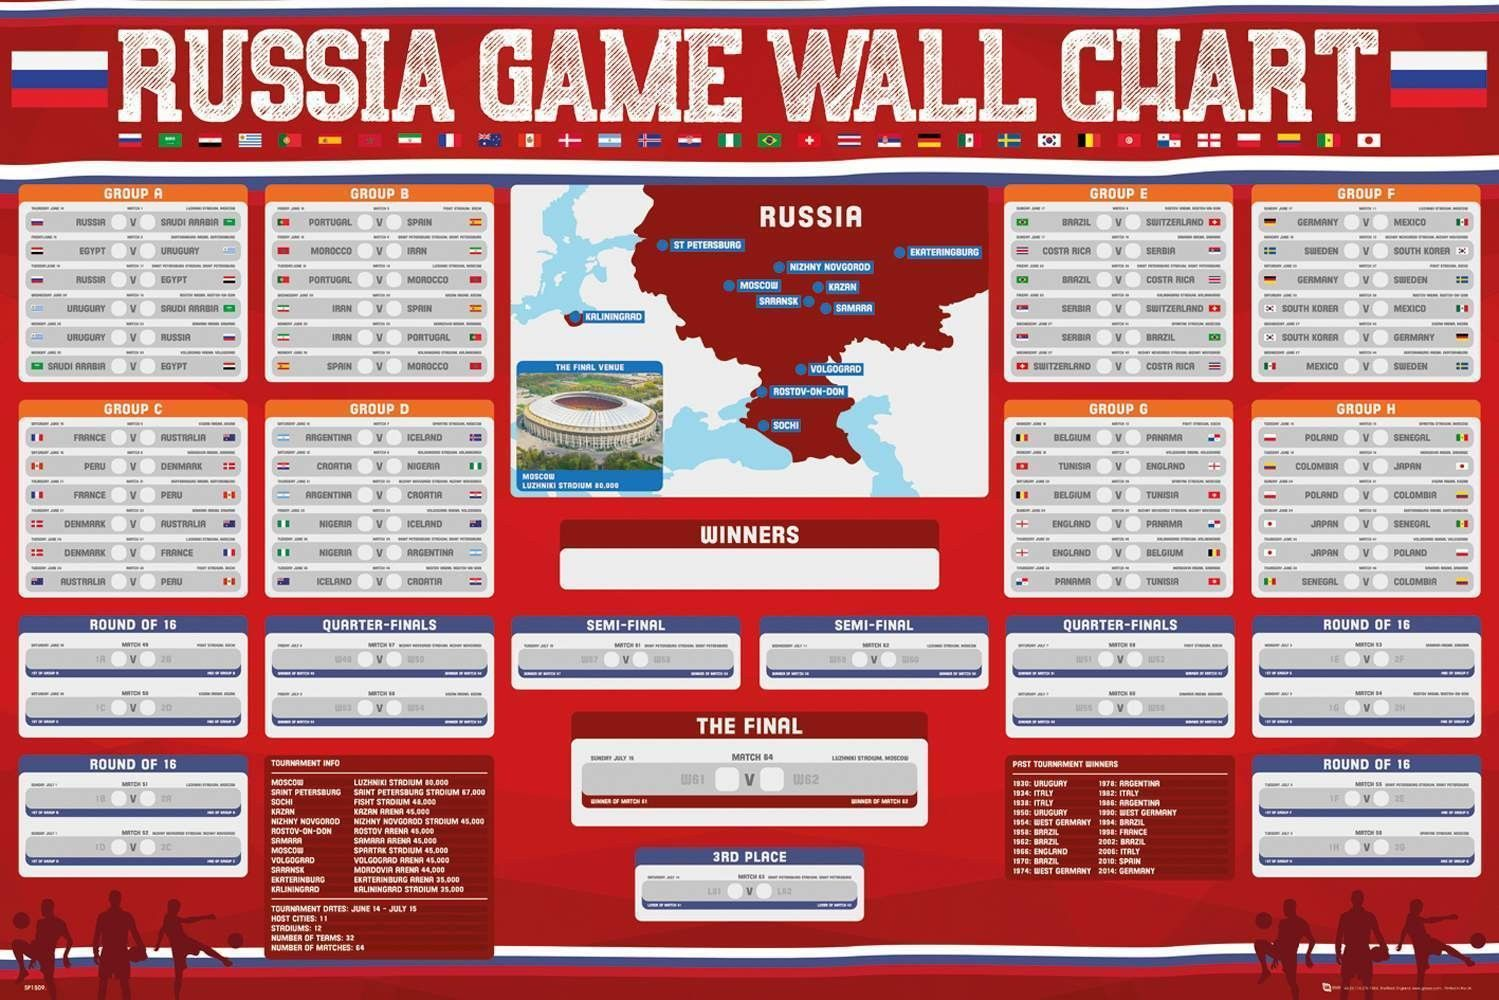 Russia Game Wall Chart